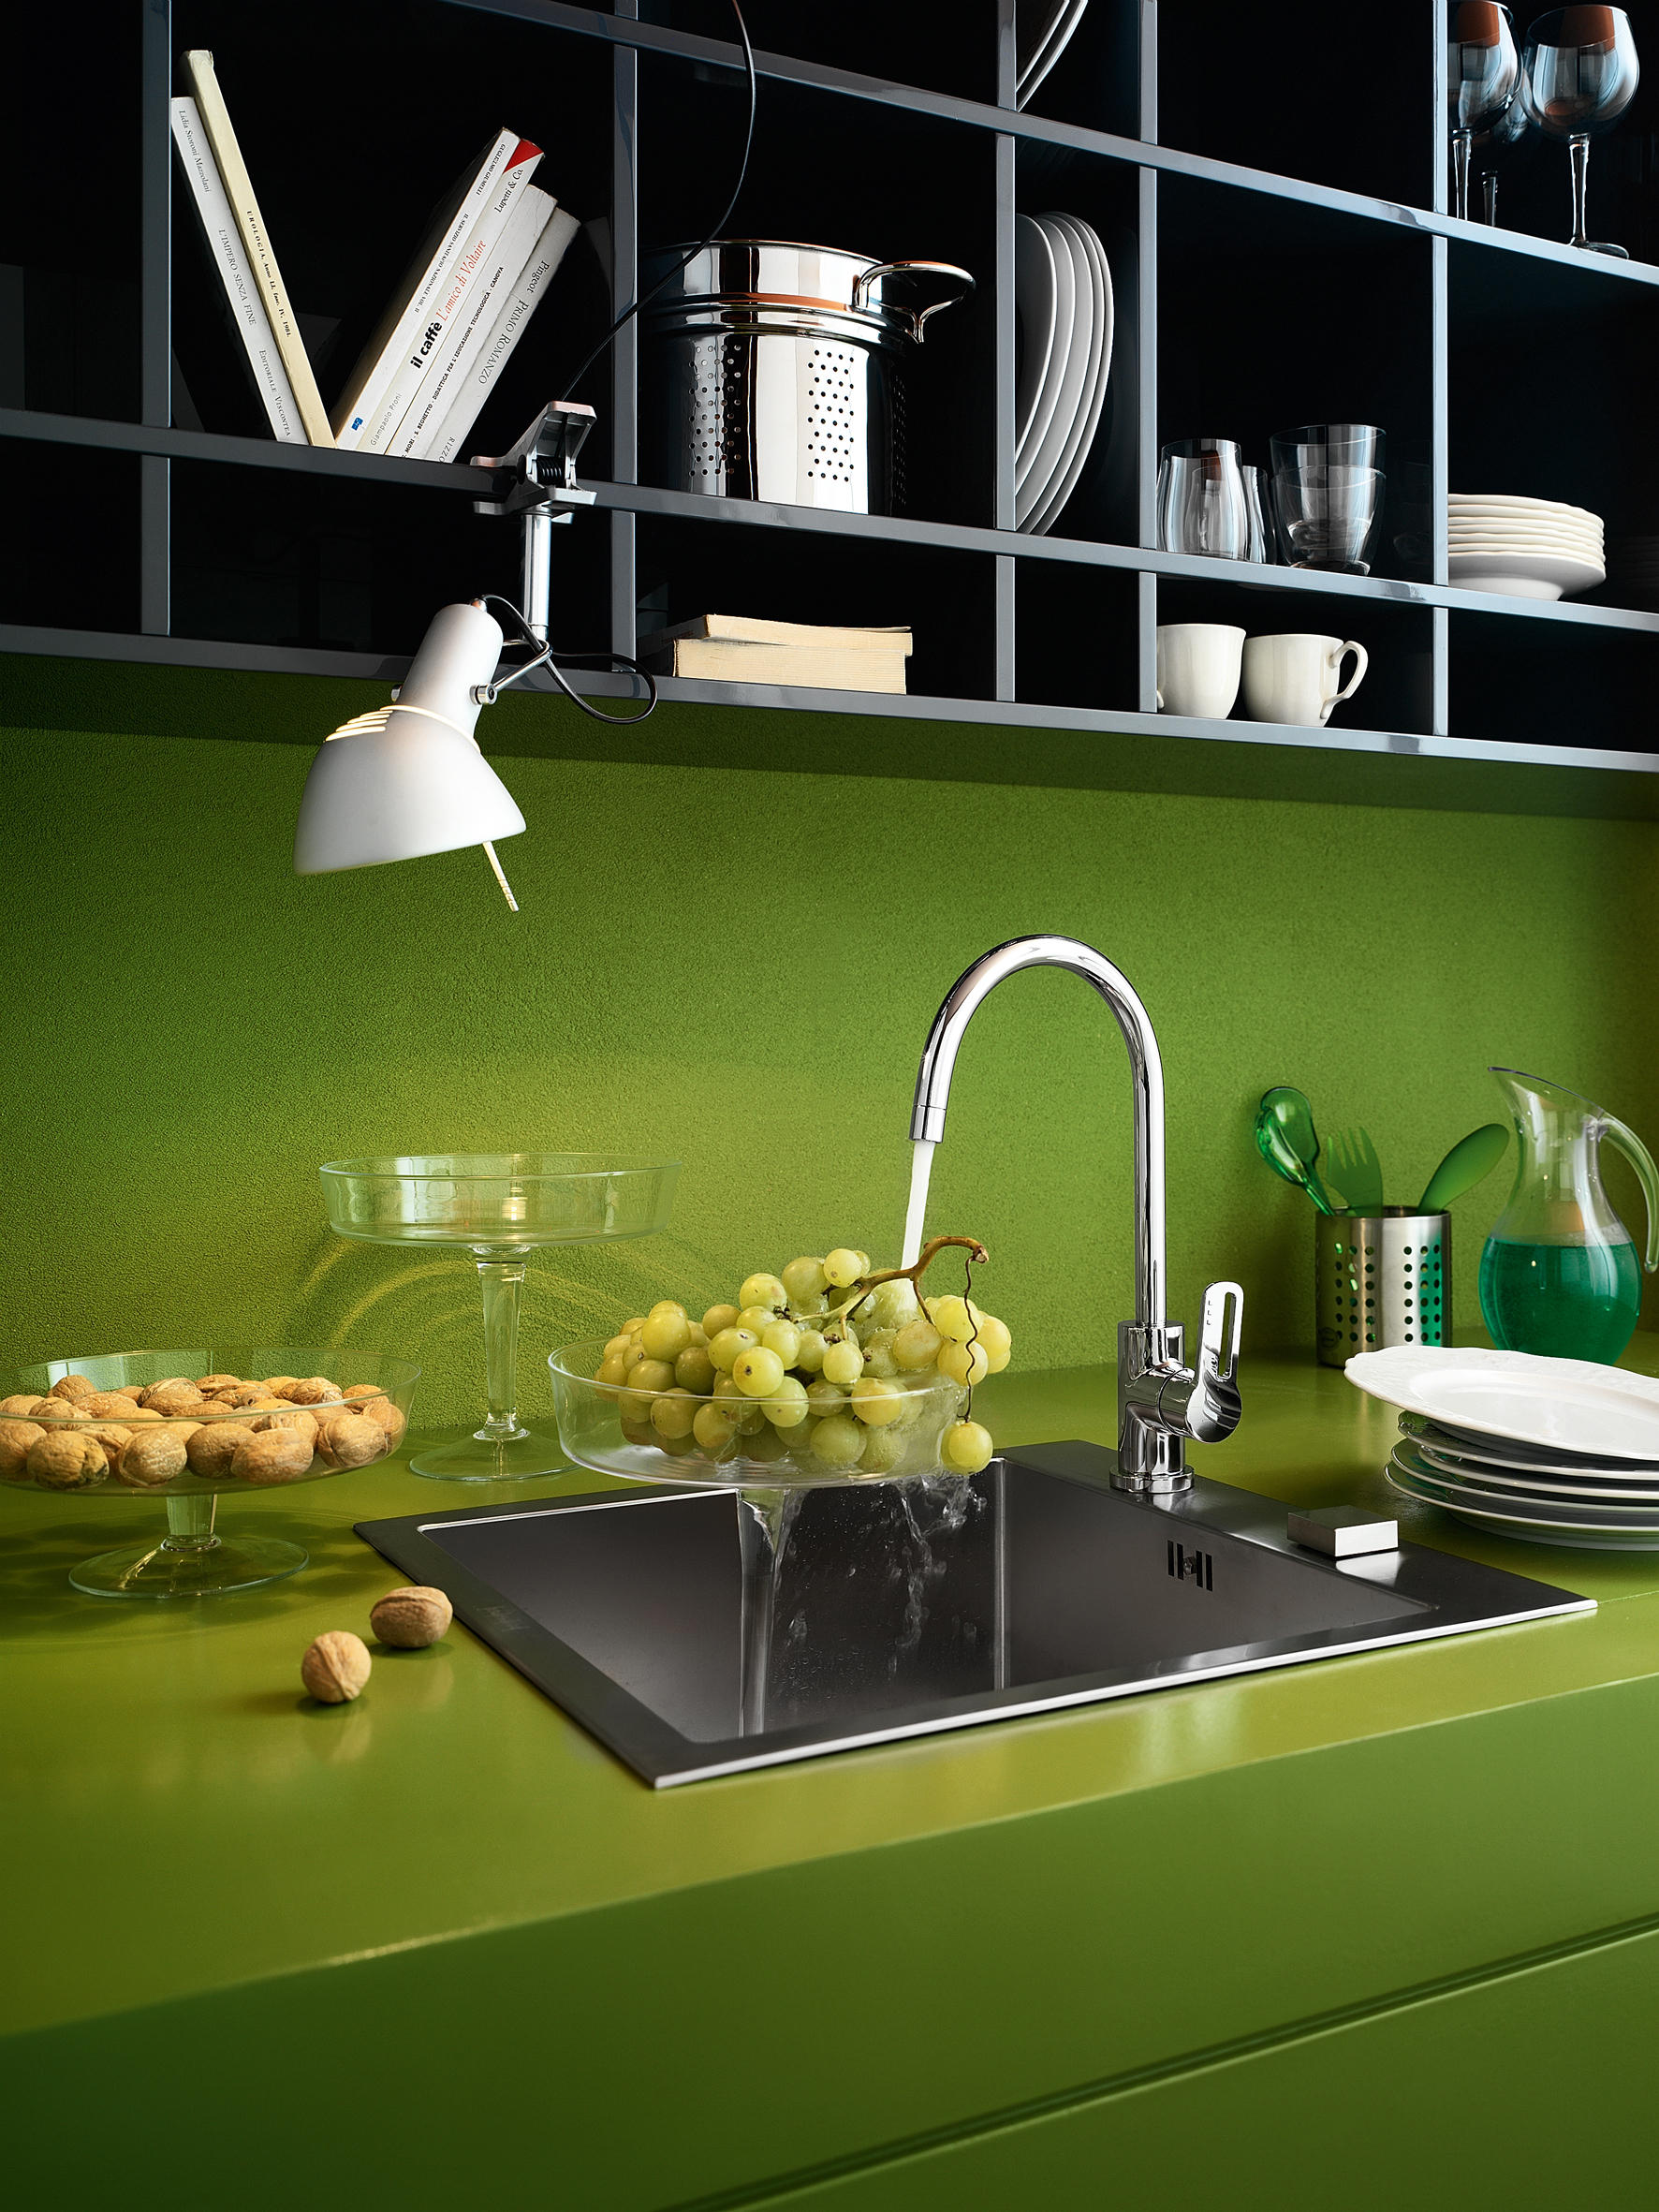 NEW ROAD - Wash basin taps from NOBILI | Architonic